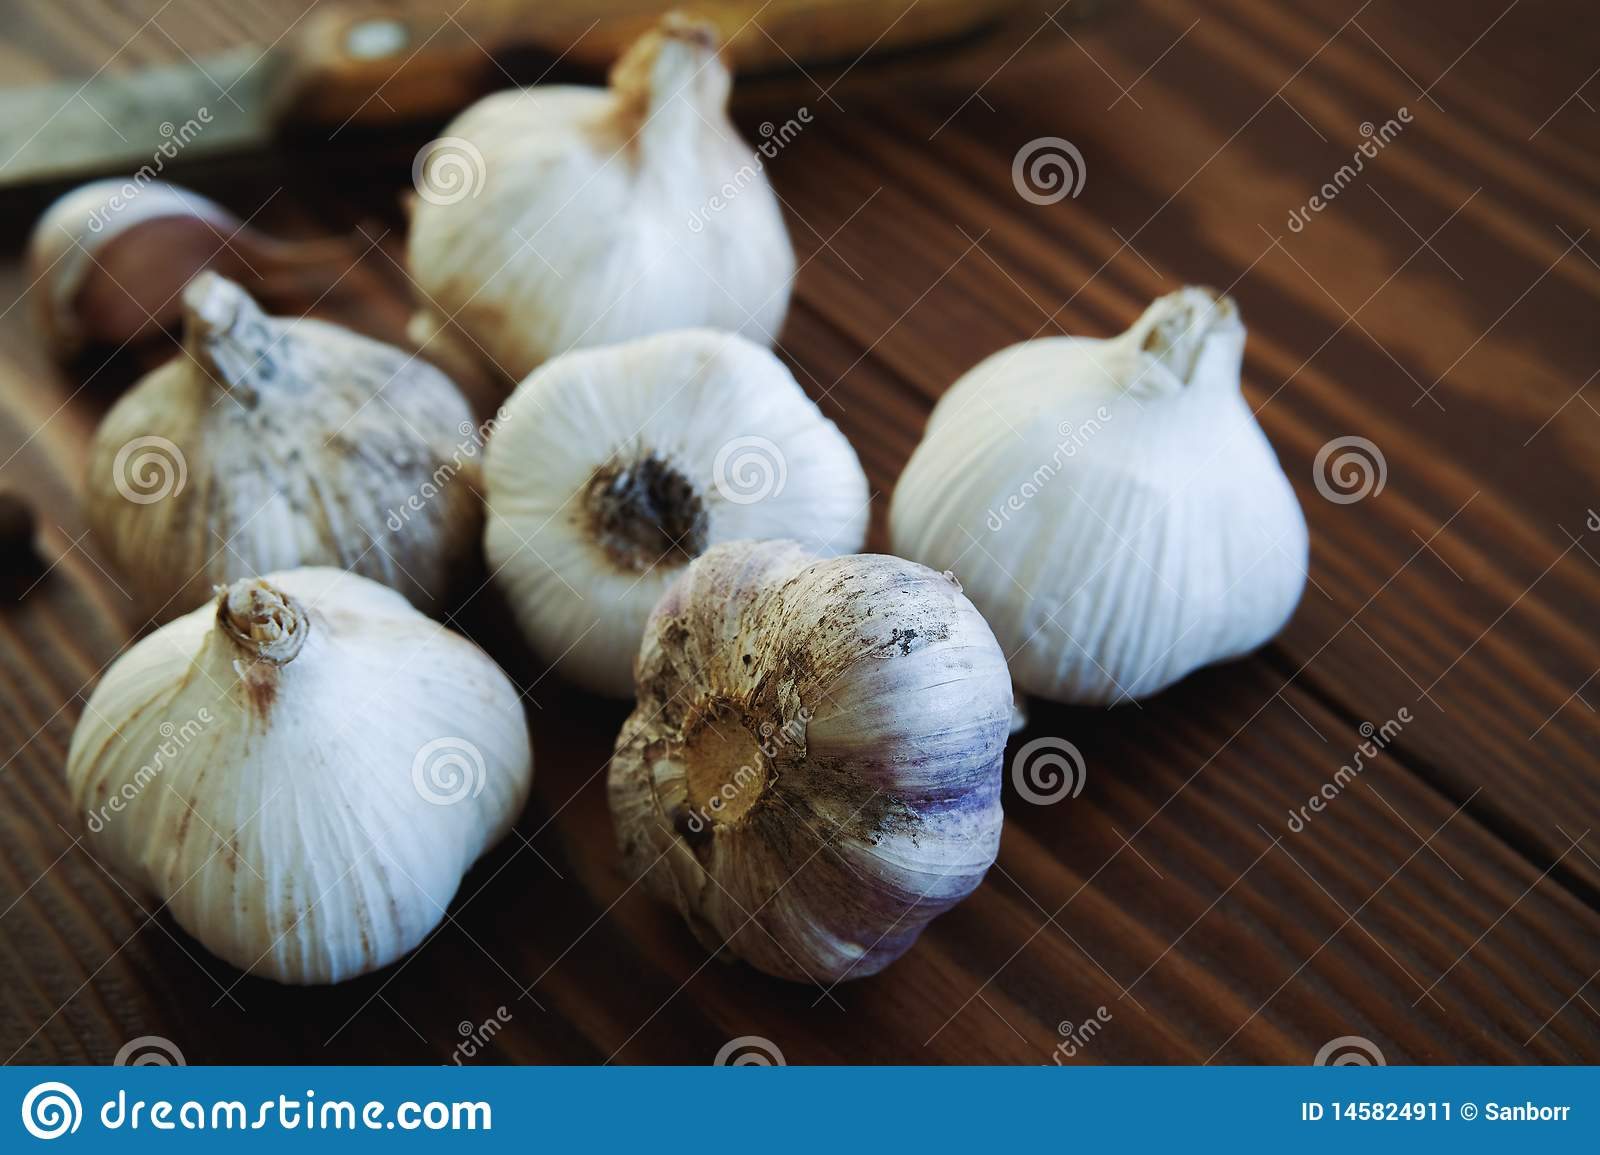 Garlic and spices on a wooden table. Cooking with garlic. Strengthening of immunity